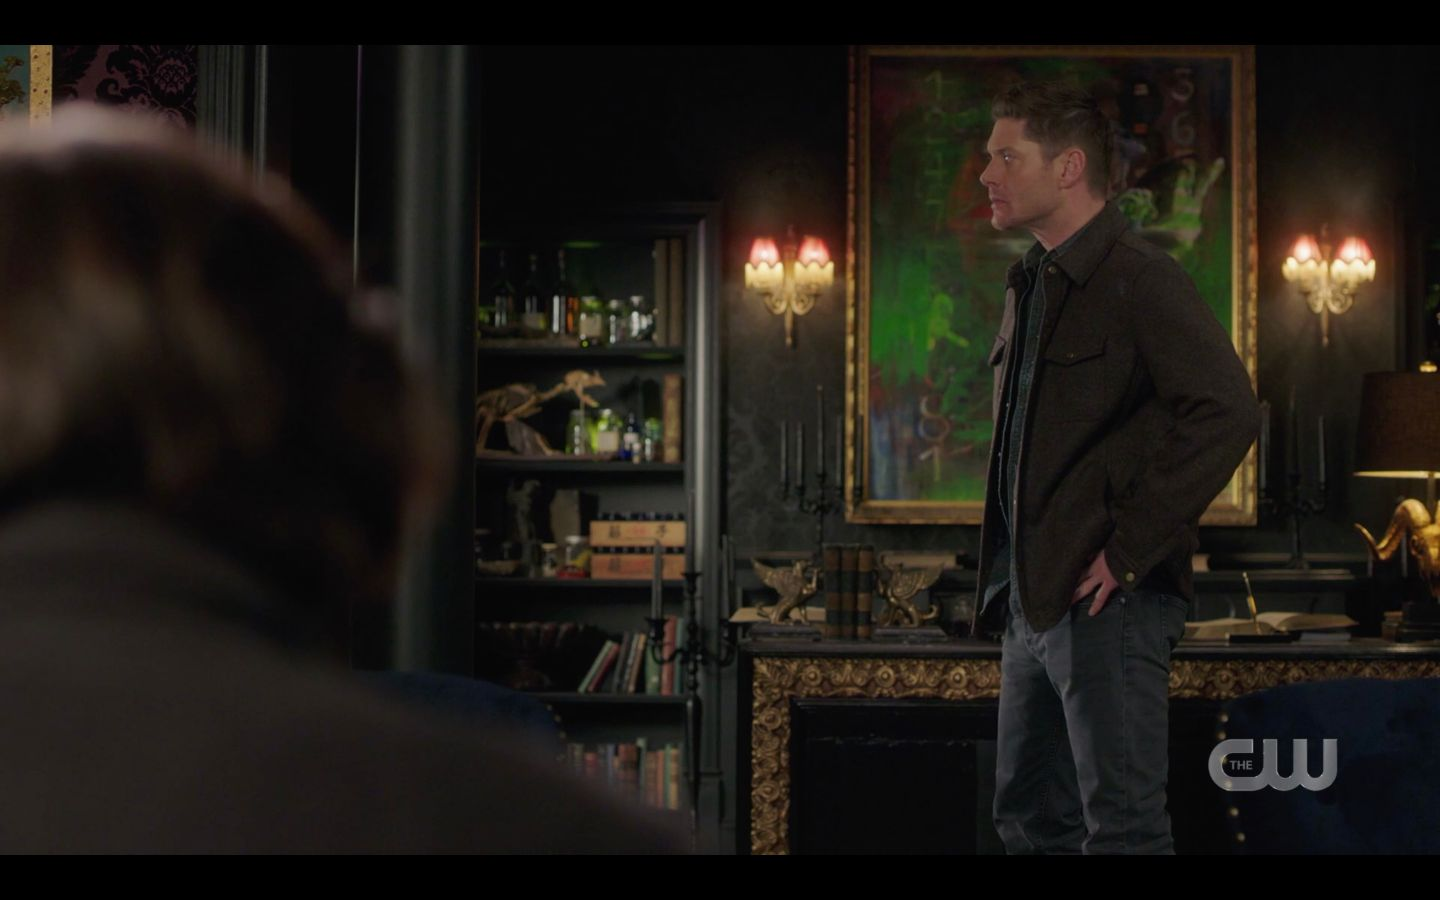 Dean Winchester to Sam Cas should have told us SPN 14.18